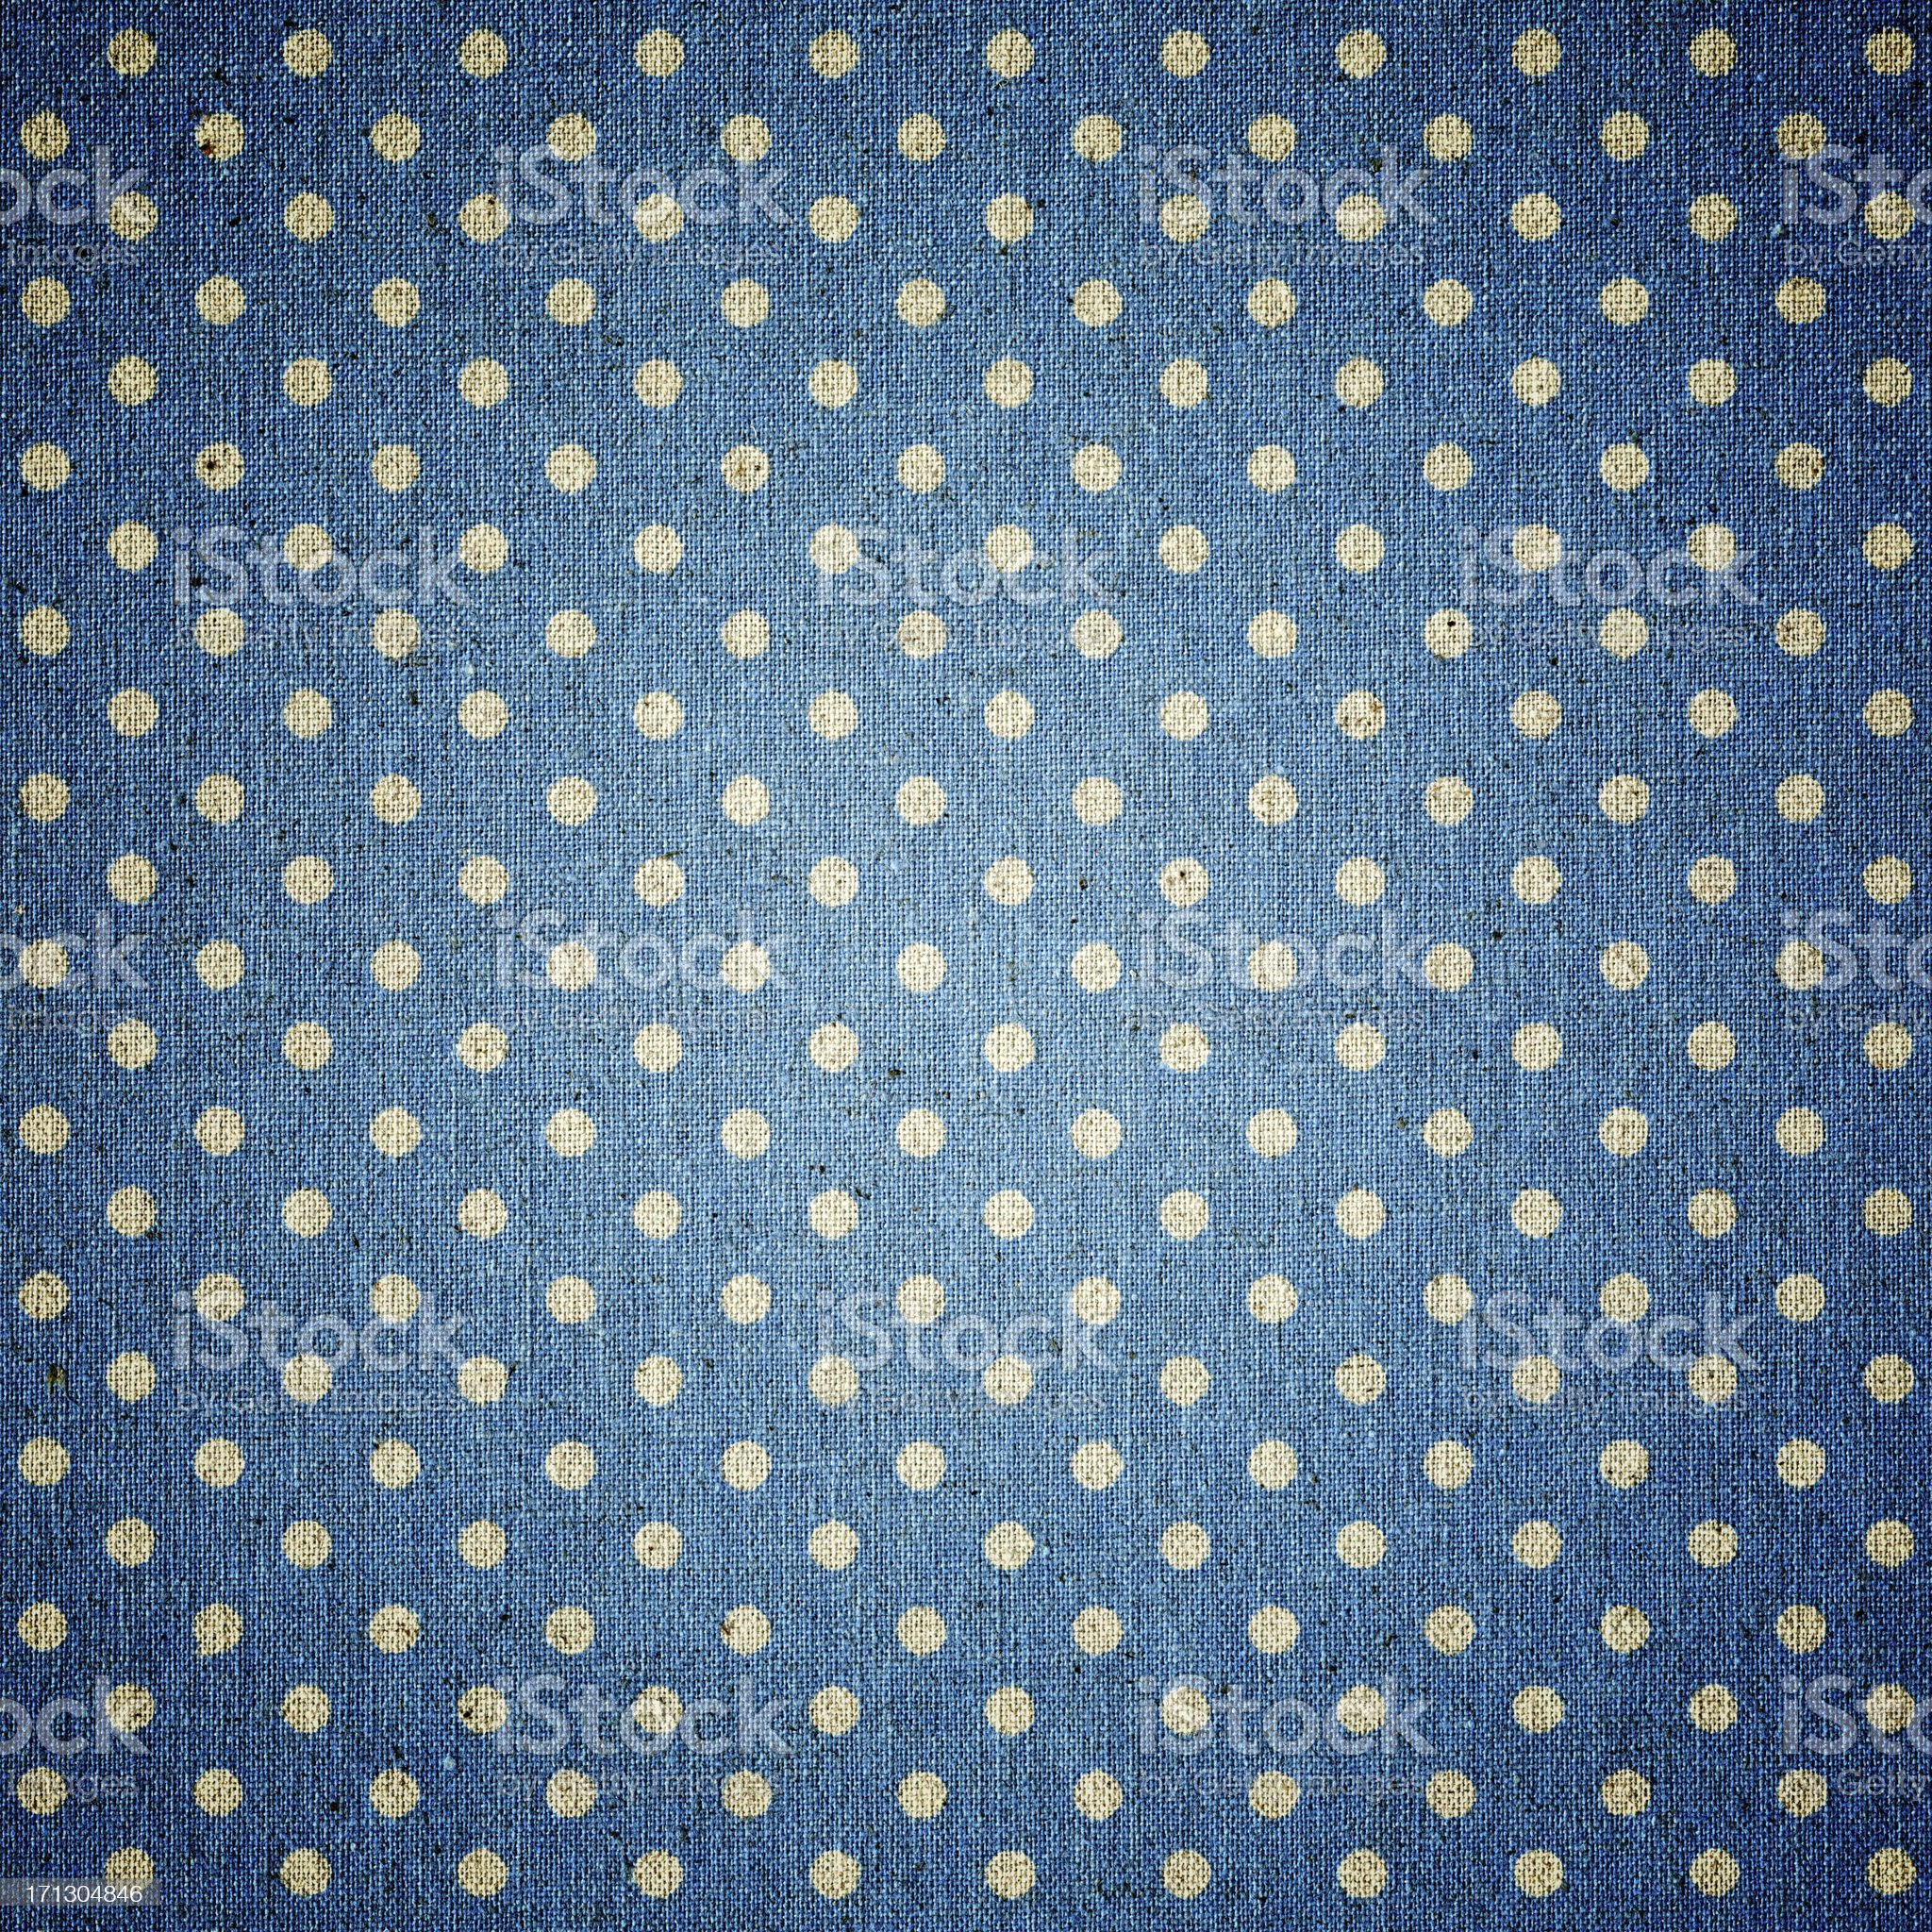 Blue Polka dots fabric background textured royalty-free stock photo